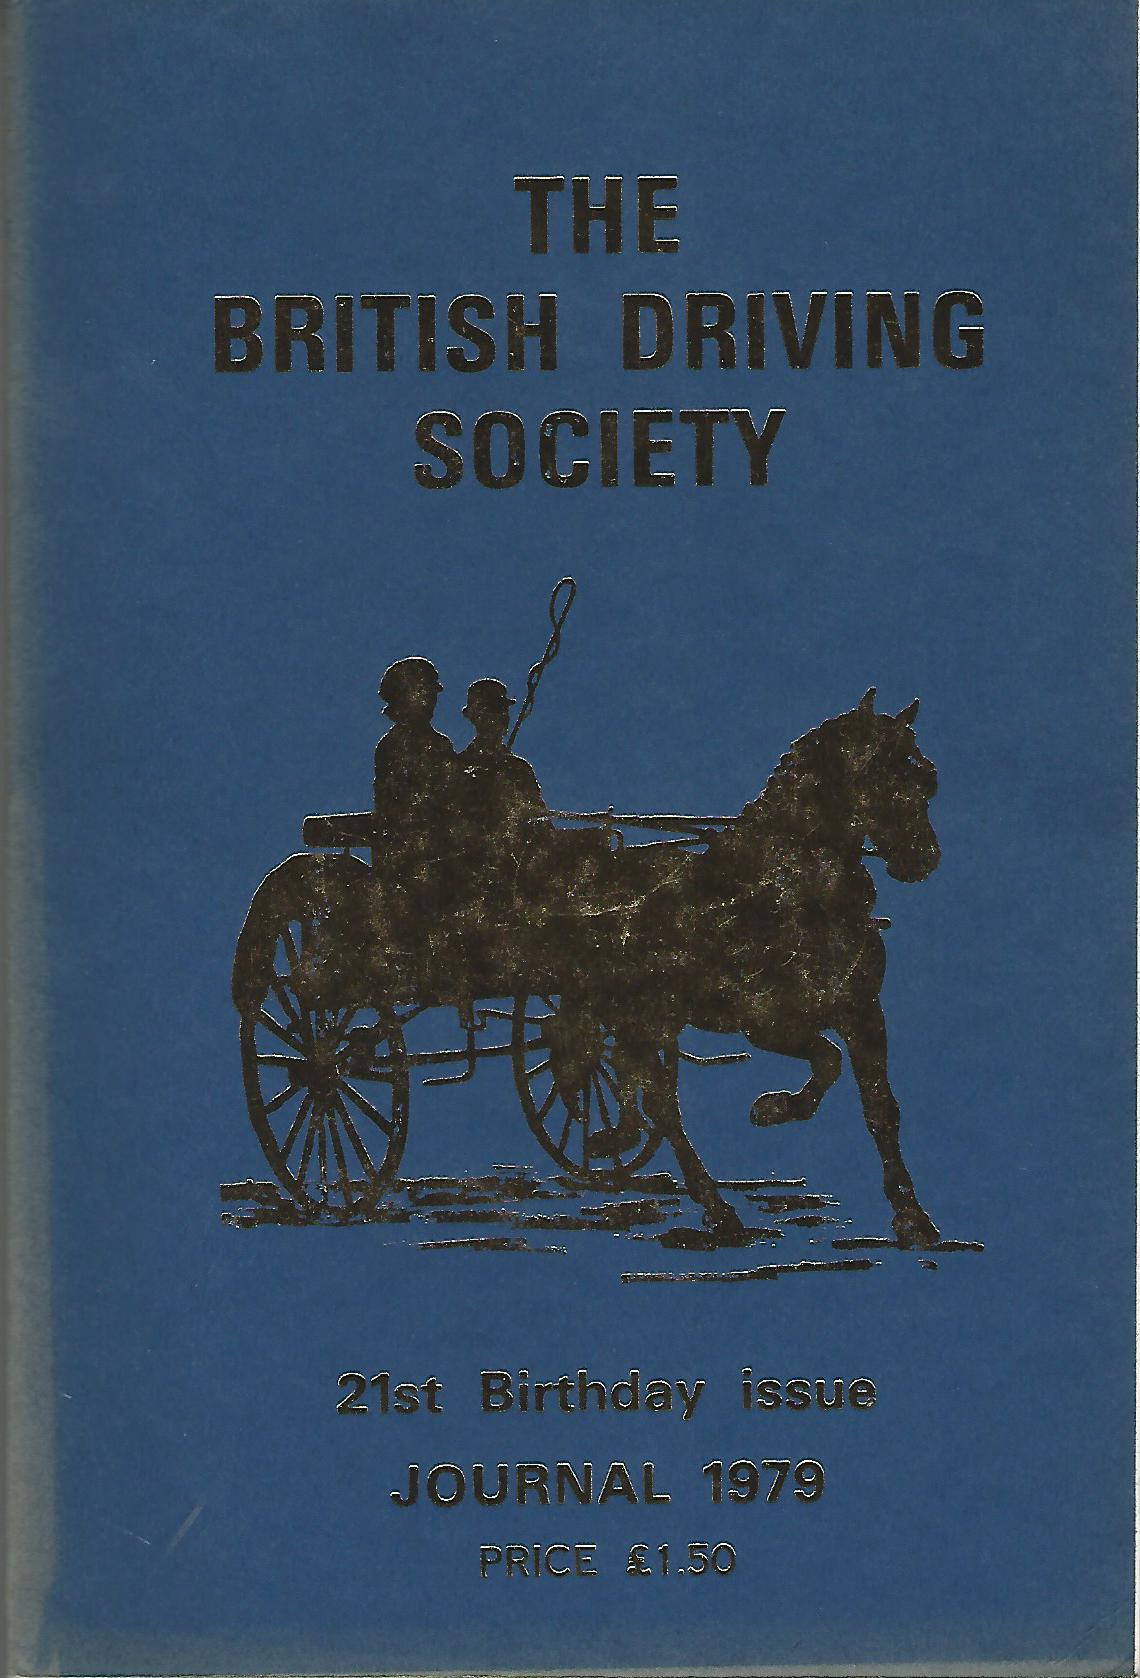 Image for The British Driving Society Journal 1979. 21st Birthday Issue.